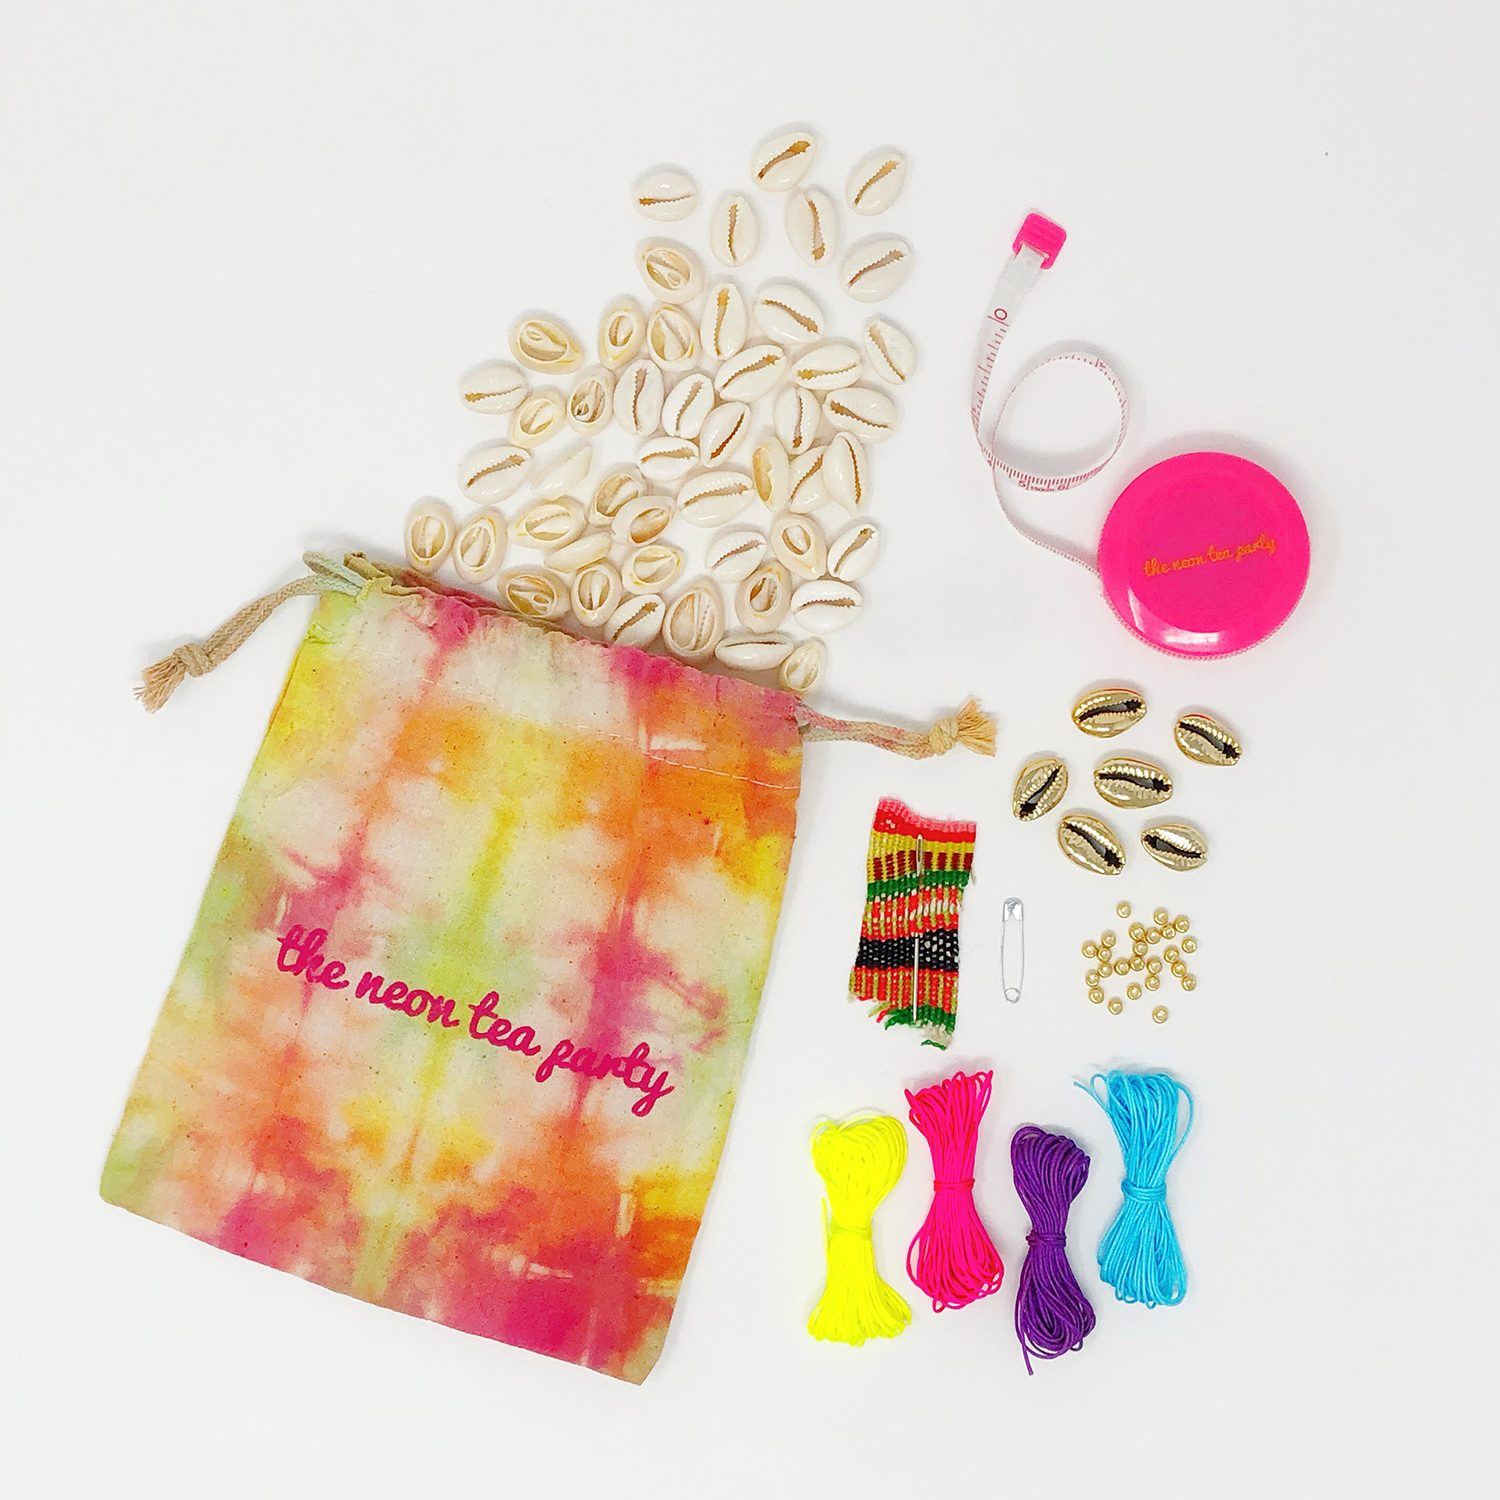 Cowrie Shell Jewelry DIY Kit - The Neon Tea Party 1